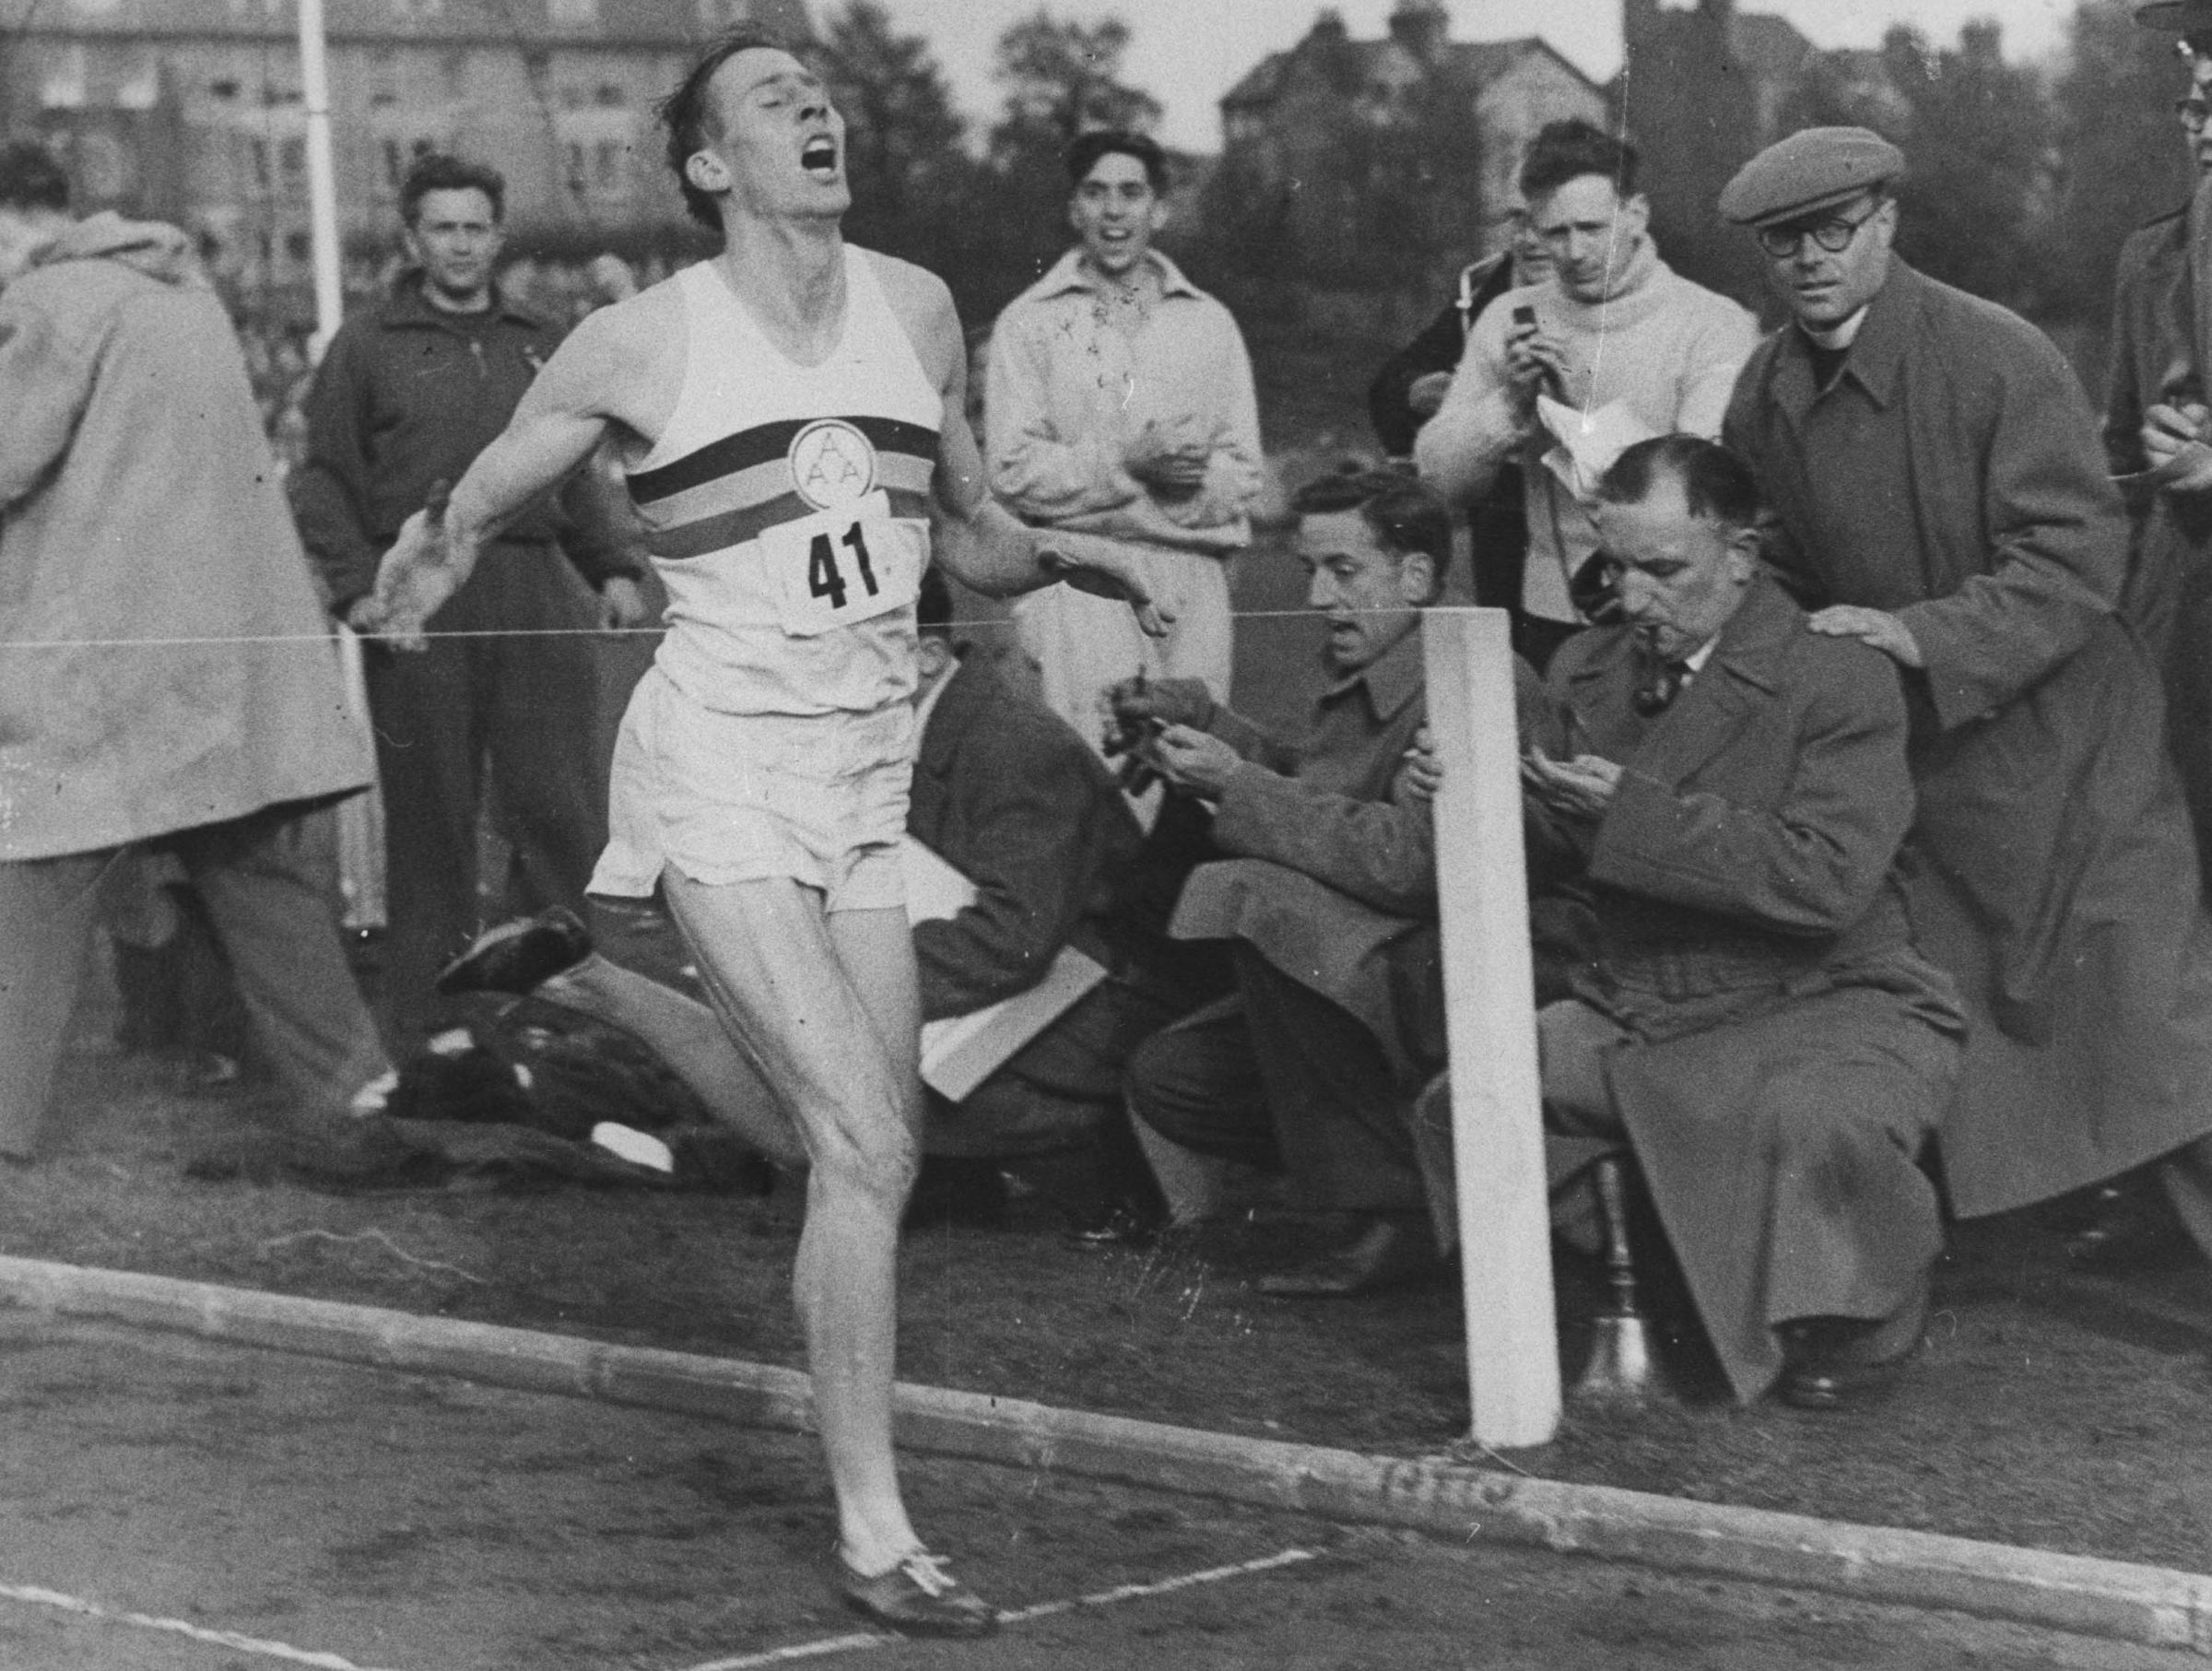 Roger Bannister breaking the four-minute mile in 1954